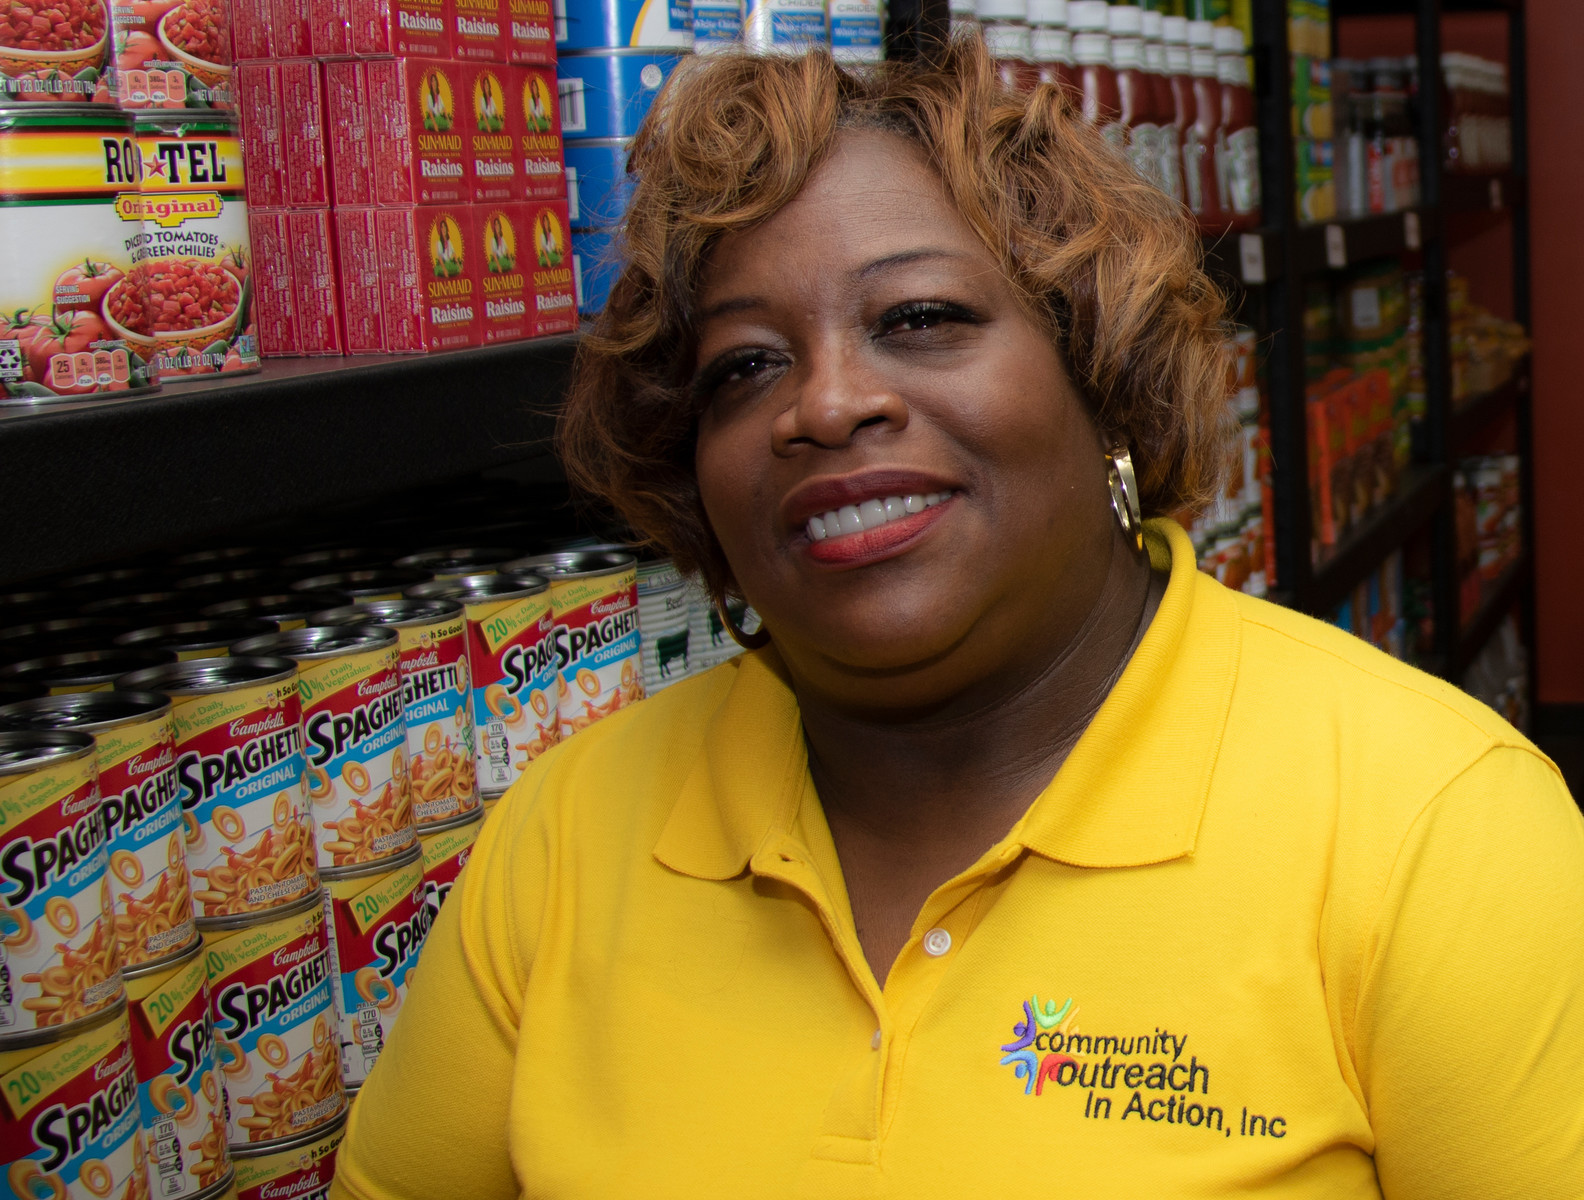 A woman manager of a food bank sits in front of shelves stocked with food items.